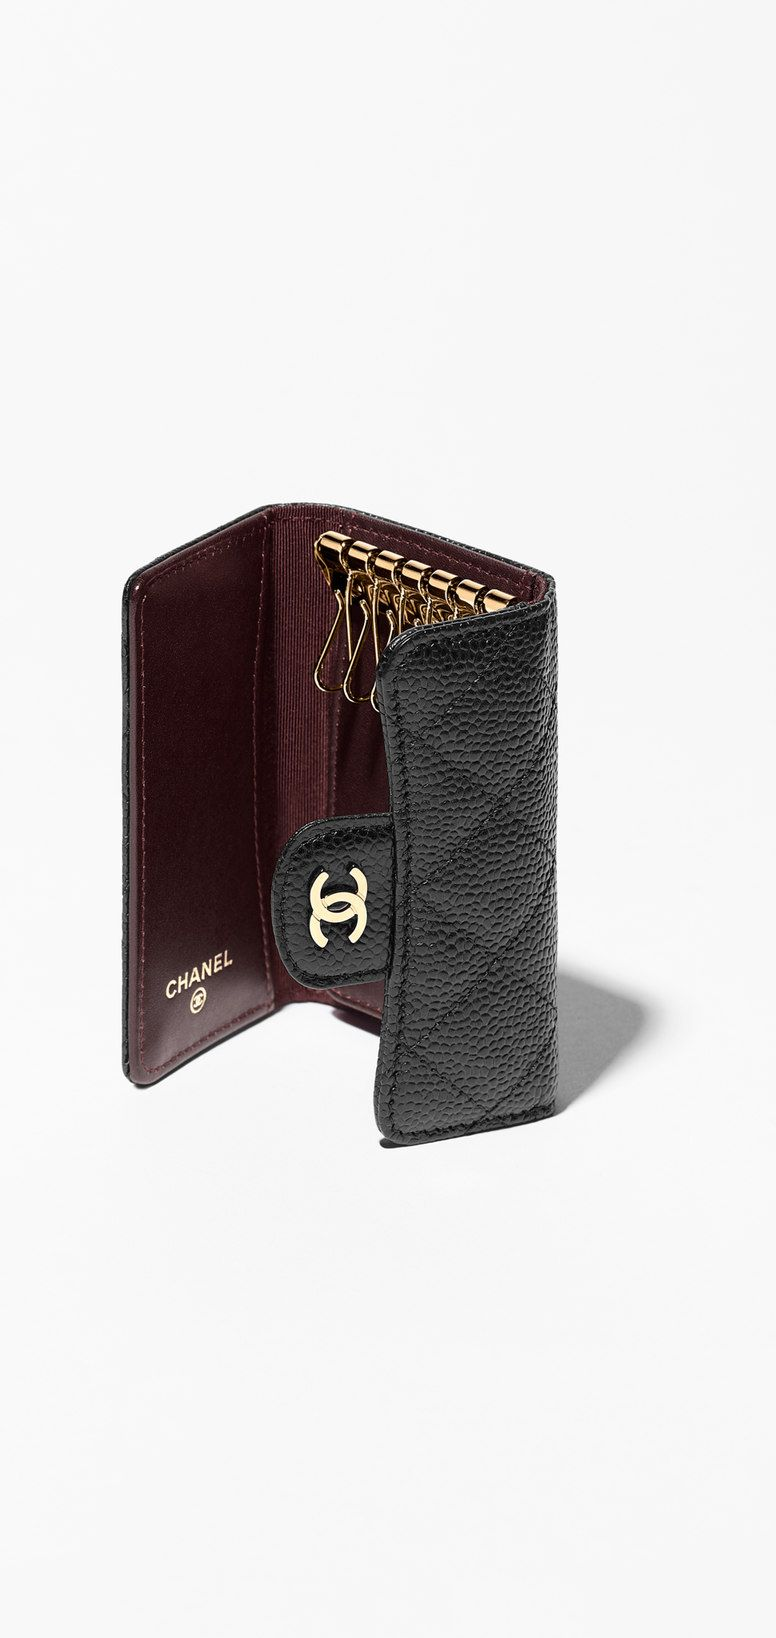 chanel key holder // grained calfskin & gold metal-black ...